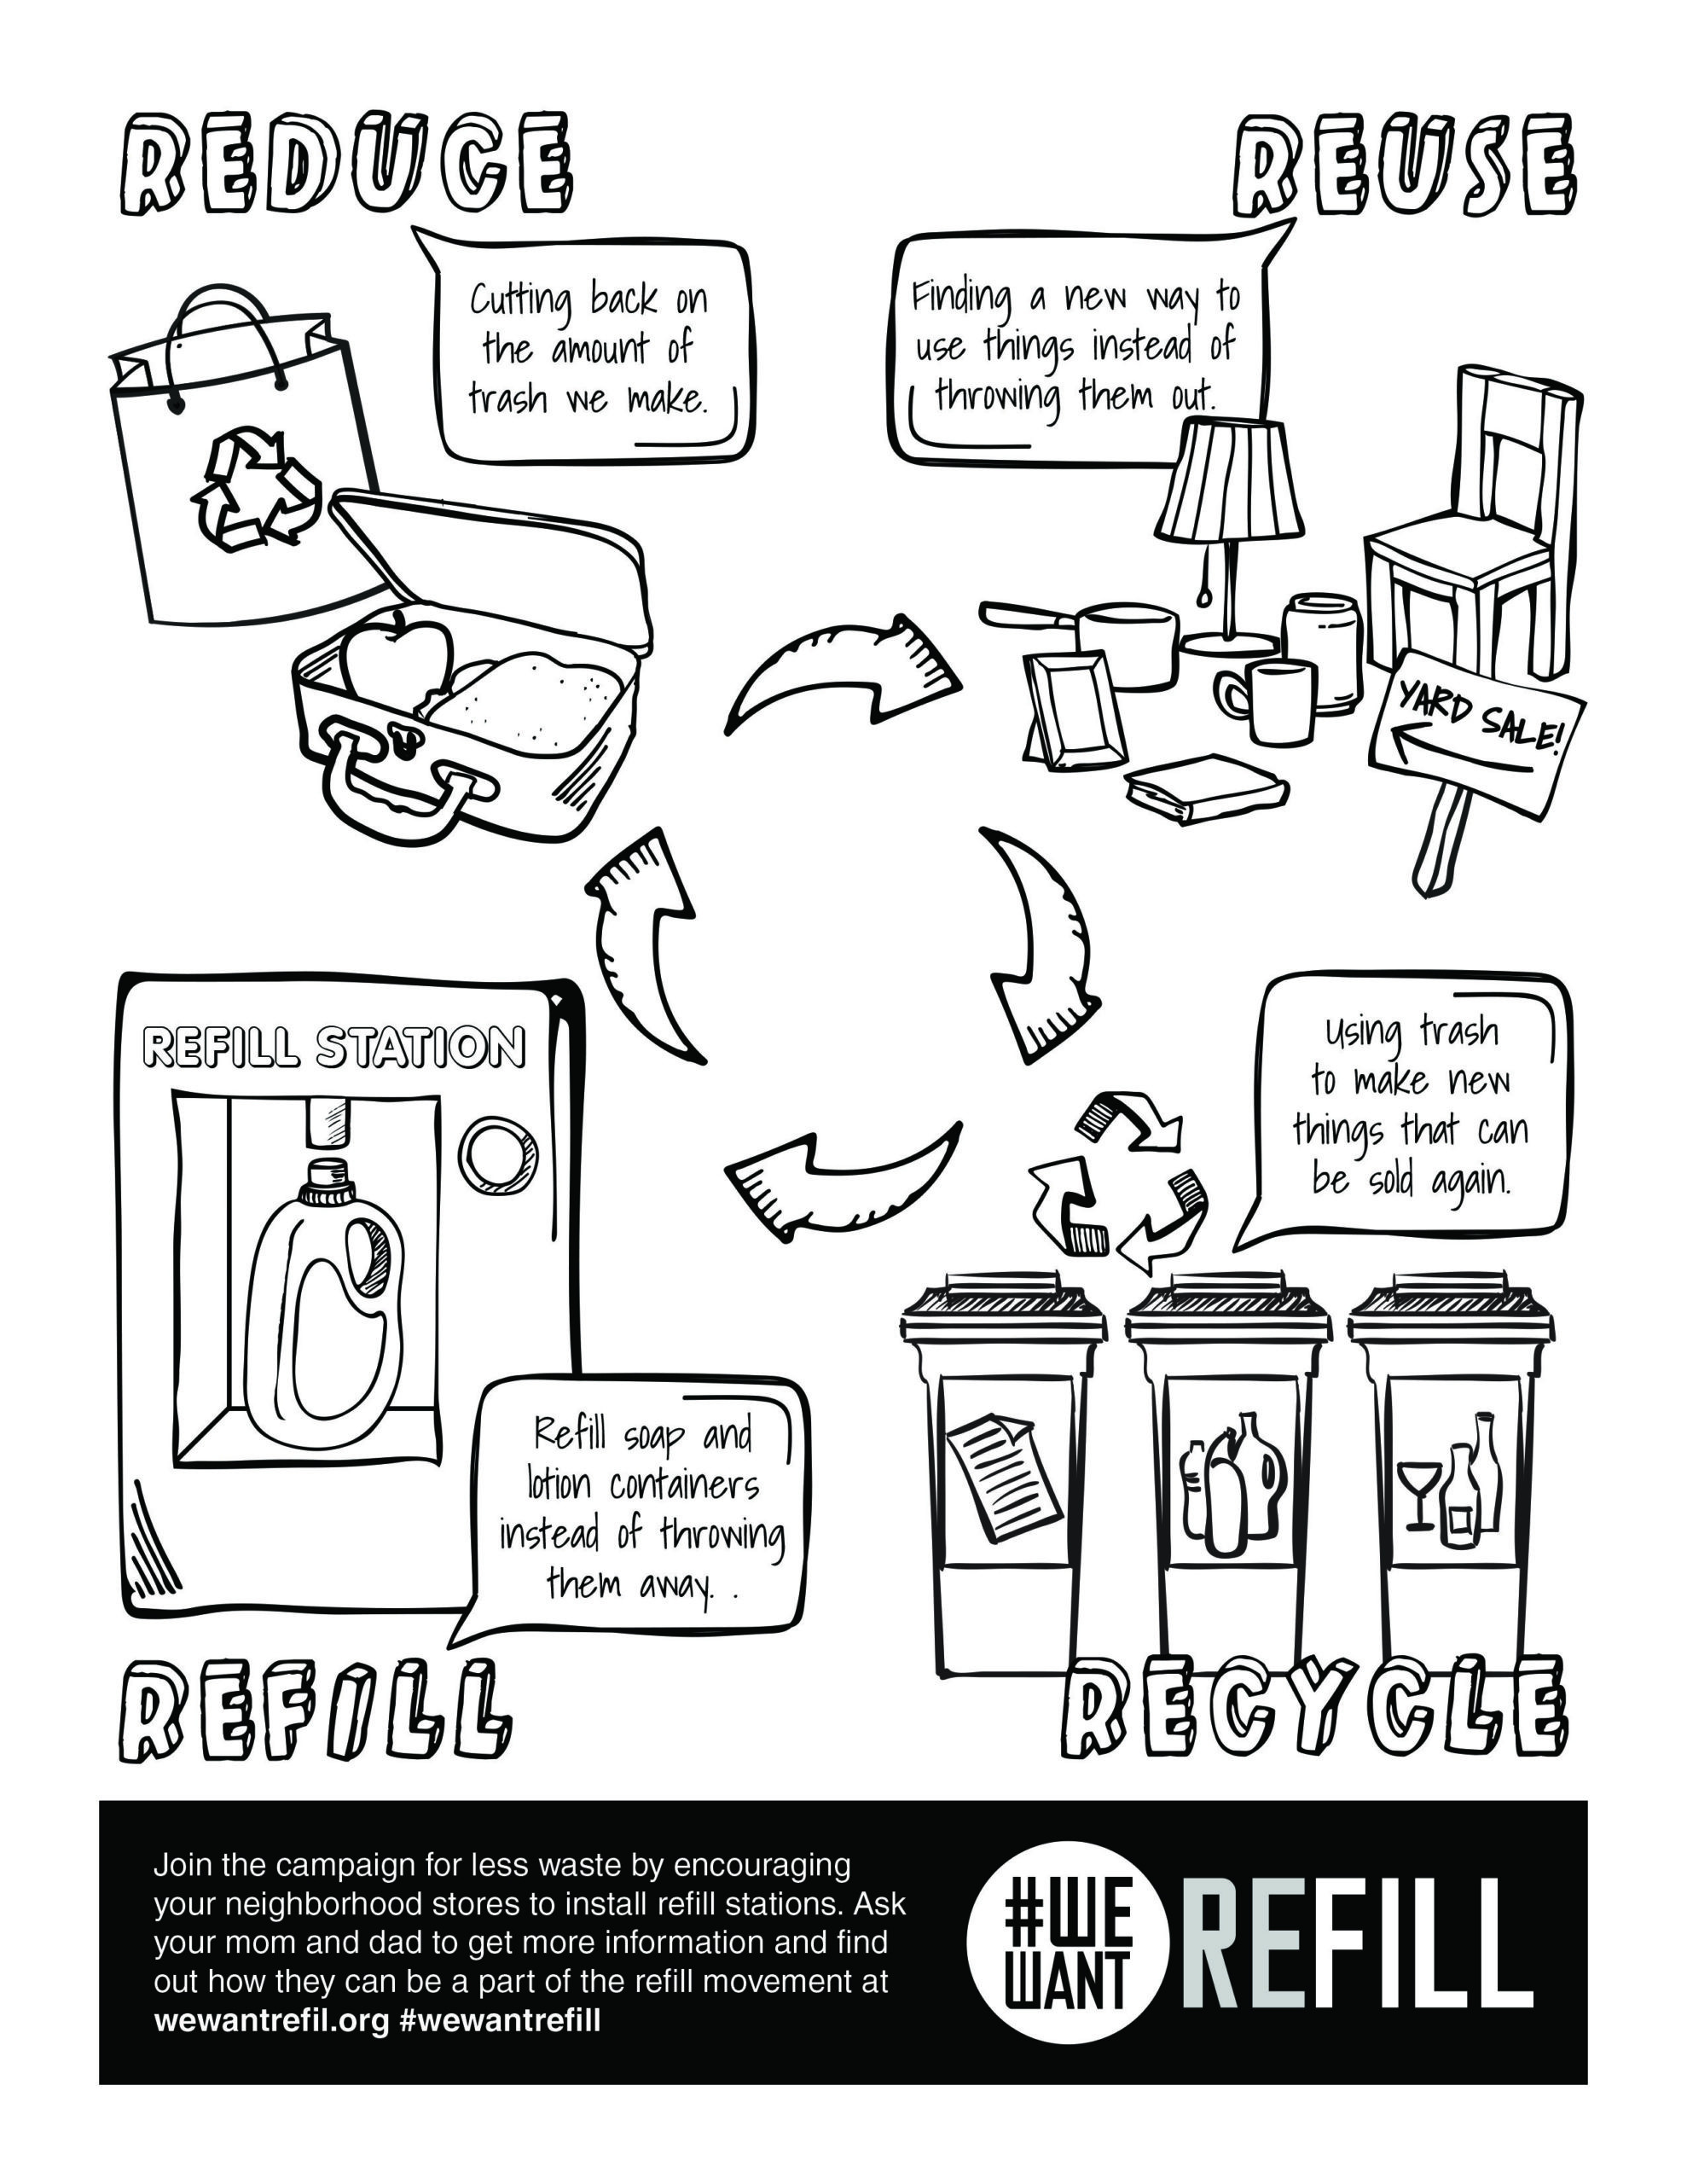 Recycling Worksheets for Middle School Free Downloadable Coloring for Kids Reuse Recycle Recycling